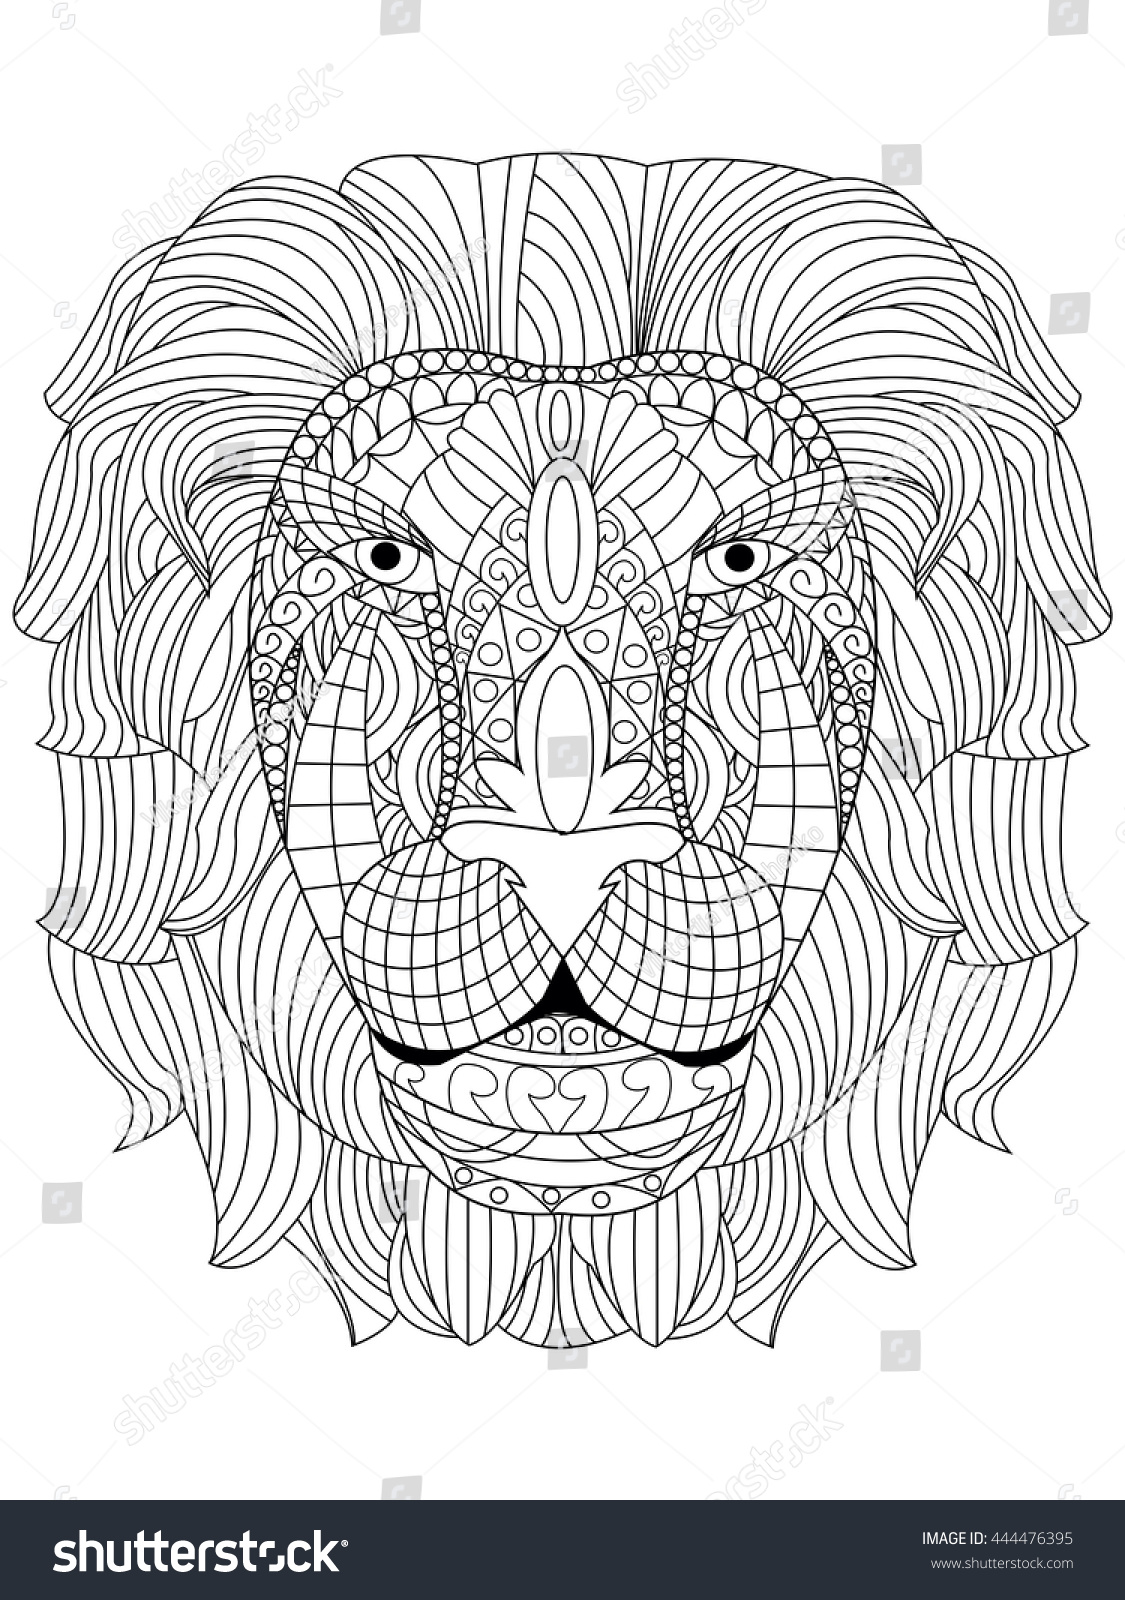 Coloring book for adults lion - Anti Stress Coloring Book Lion Lion Head Coloring Book For Adults Vector Illustration Anti Stress